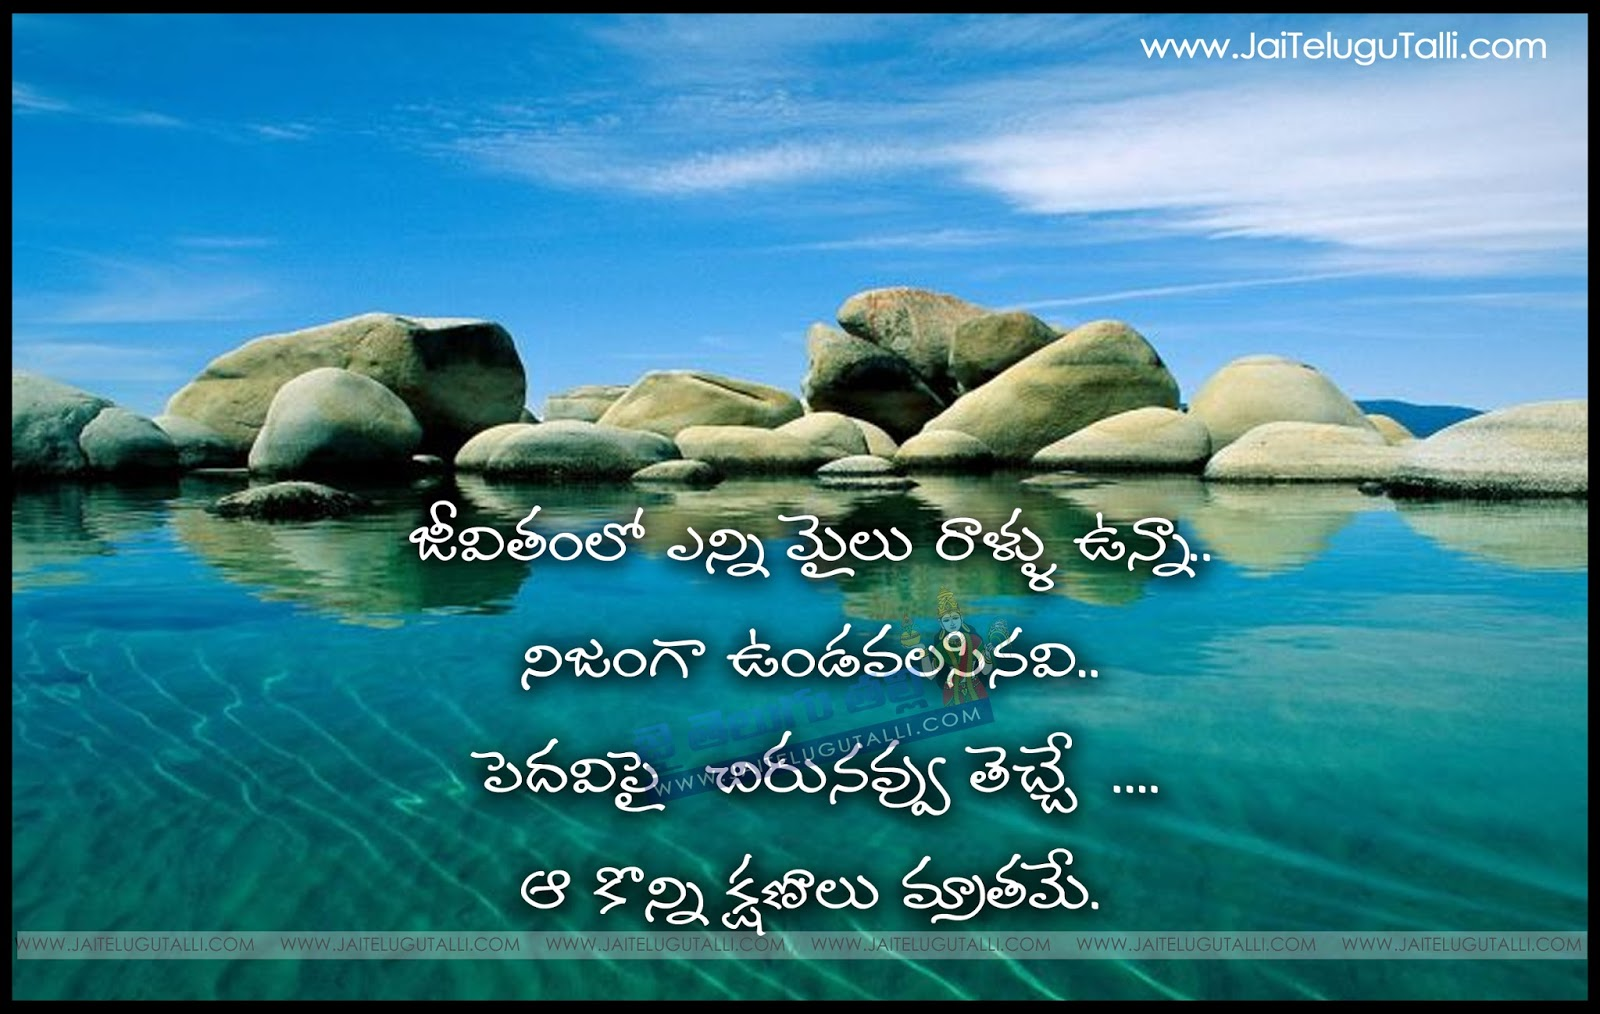 Best Telugu Life Quotes Hd Wallpapers Nice Inspirational Telugu